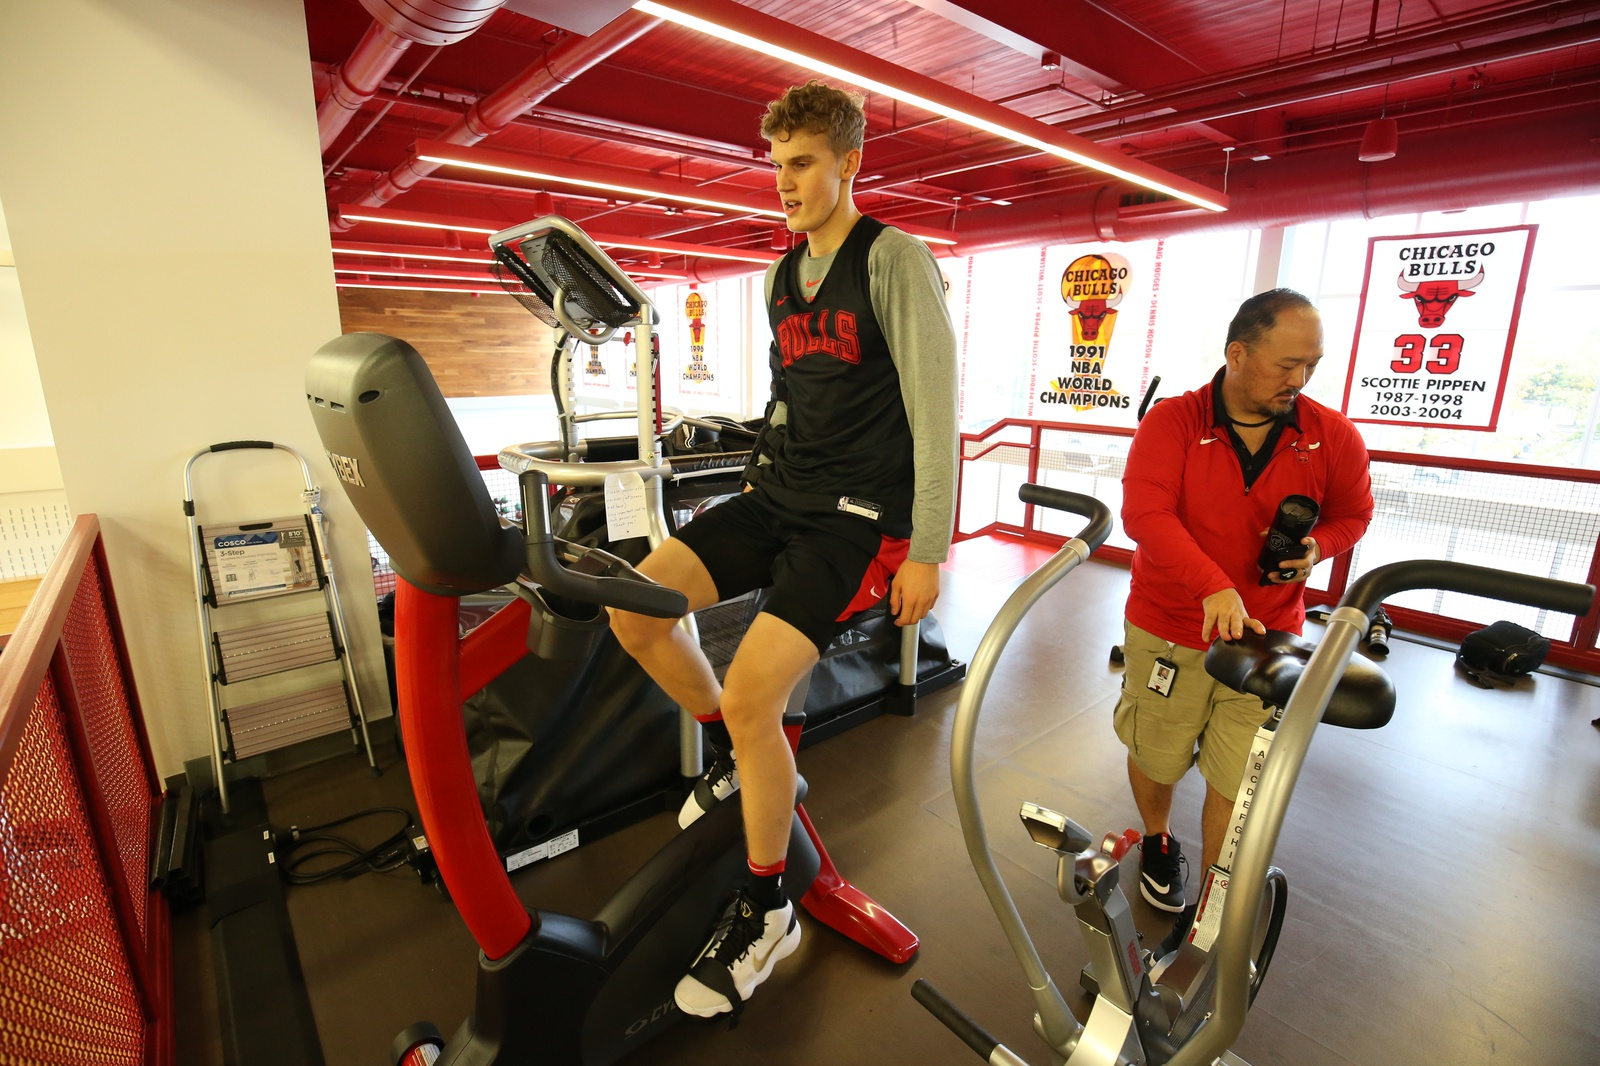 Lauri Markkanen #24 of the Chicago Bulls warms up during a practice on October 2, 2018 at the Advocate Center in Chicago, Illinois.